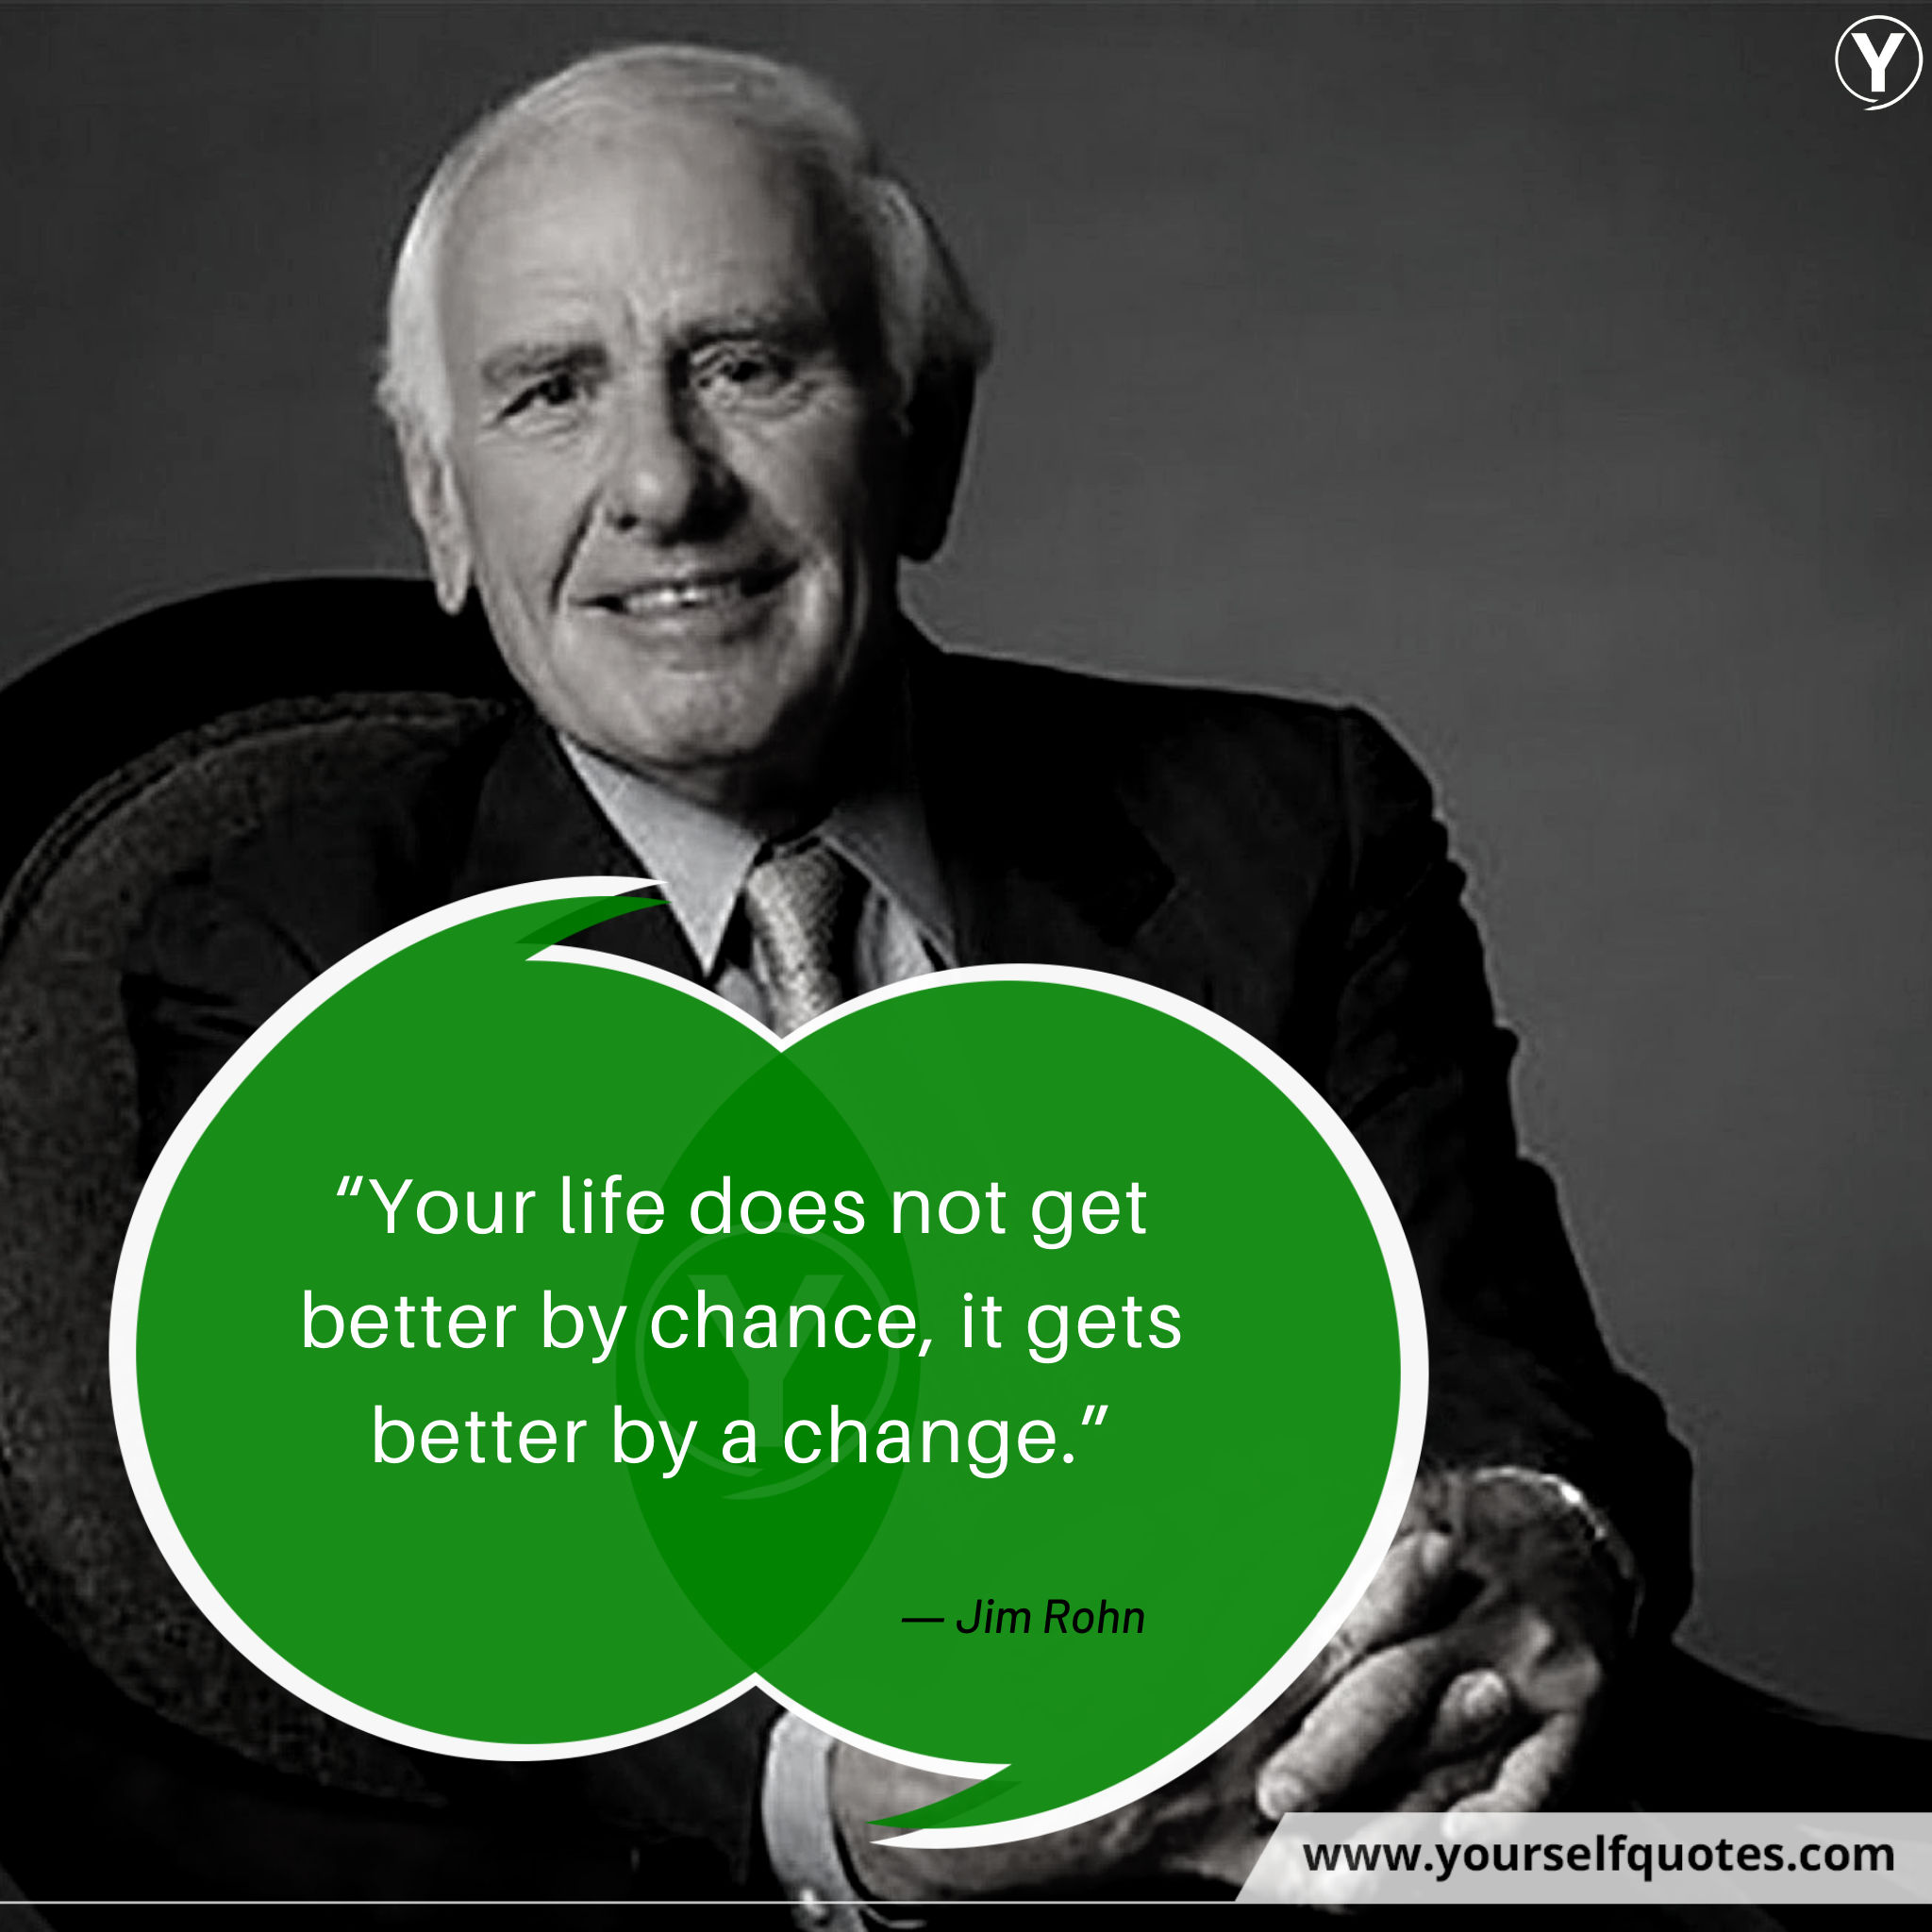 Quotes on Life by Jim Rohn